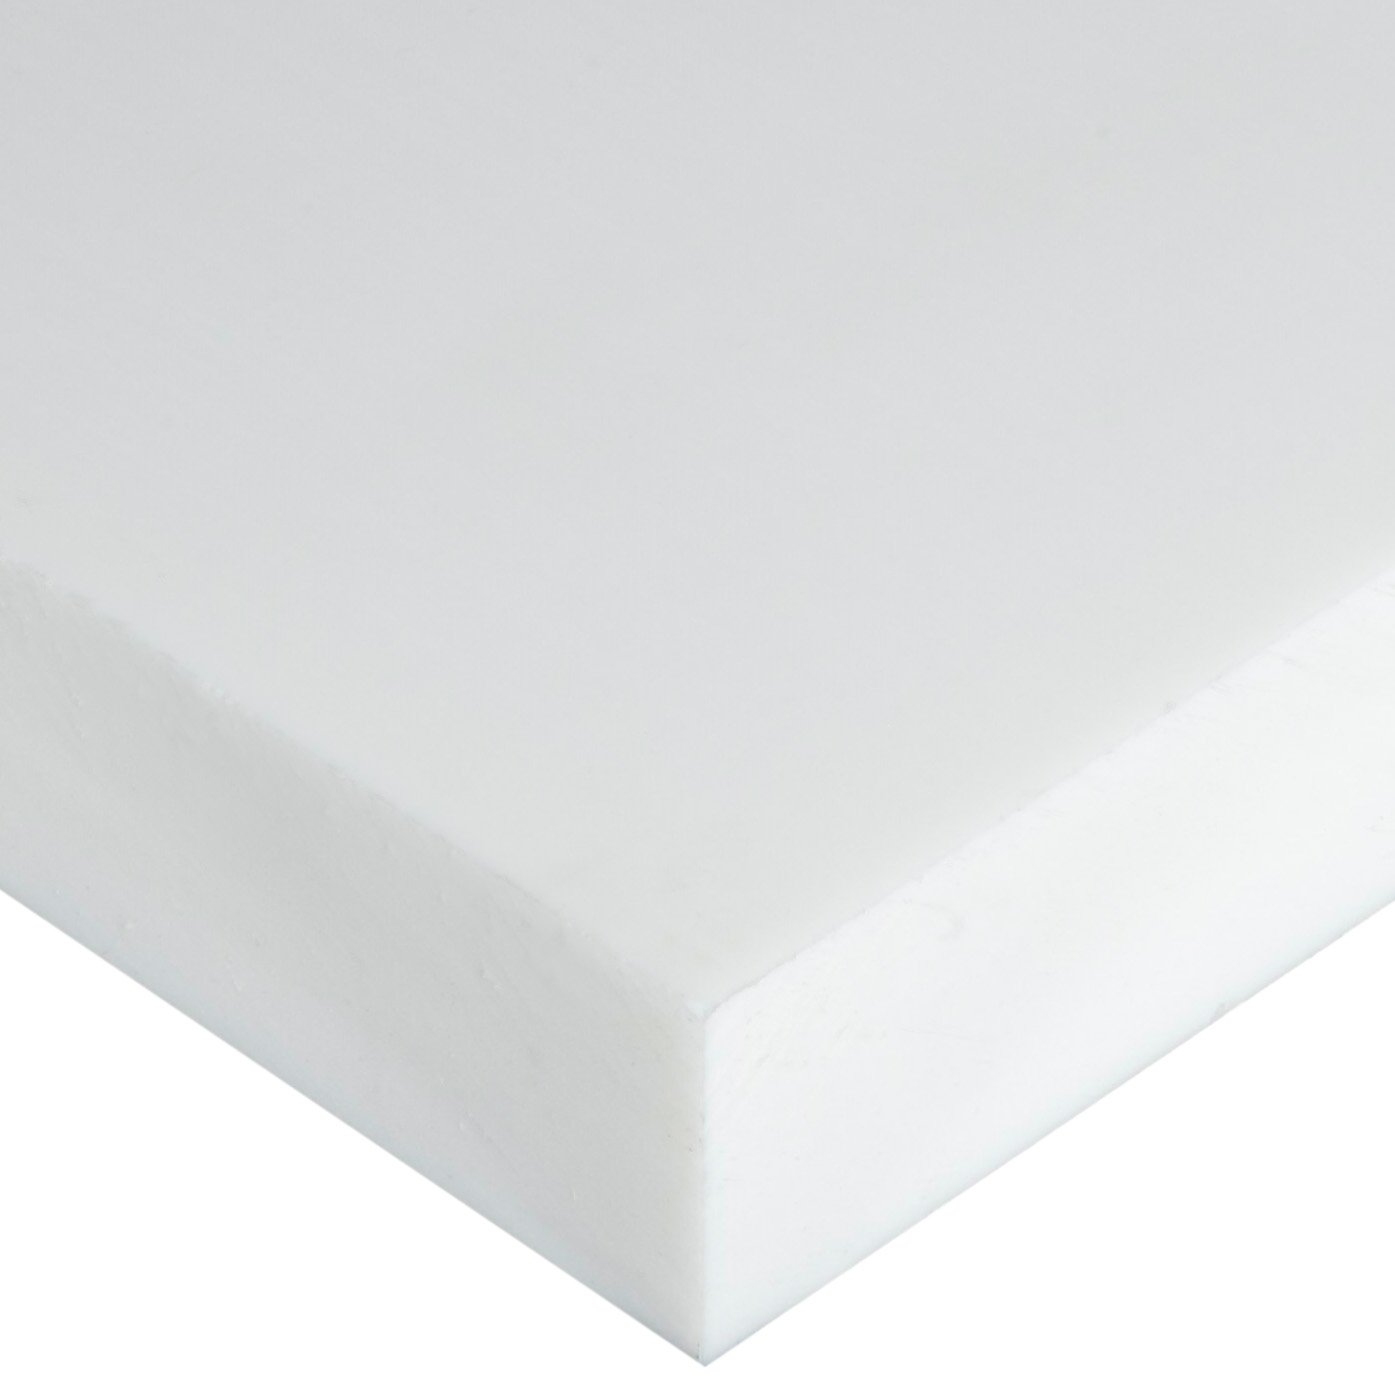 Opaque Off-White ASTM D5927 1//4 Thickness Polyethylene Terephthalate 24 Length 1//4 Thickness 12 Width 24 Length Small Parts 12 Width Standard Tolerance Sheet PET